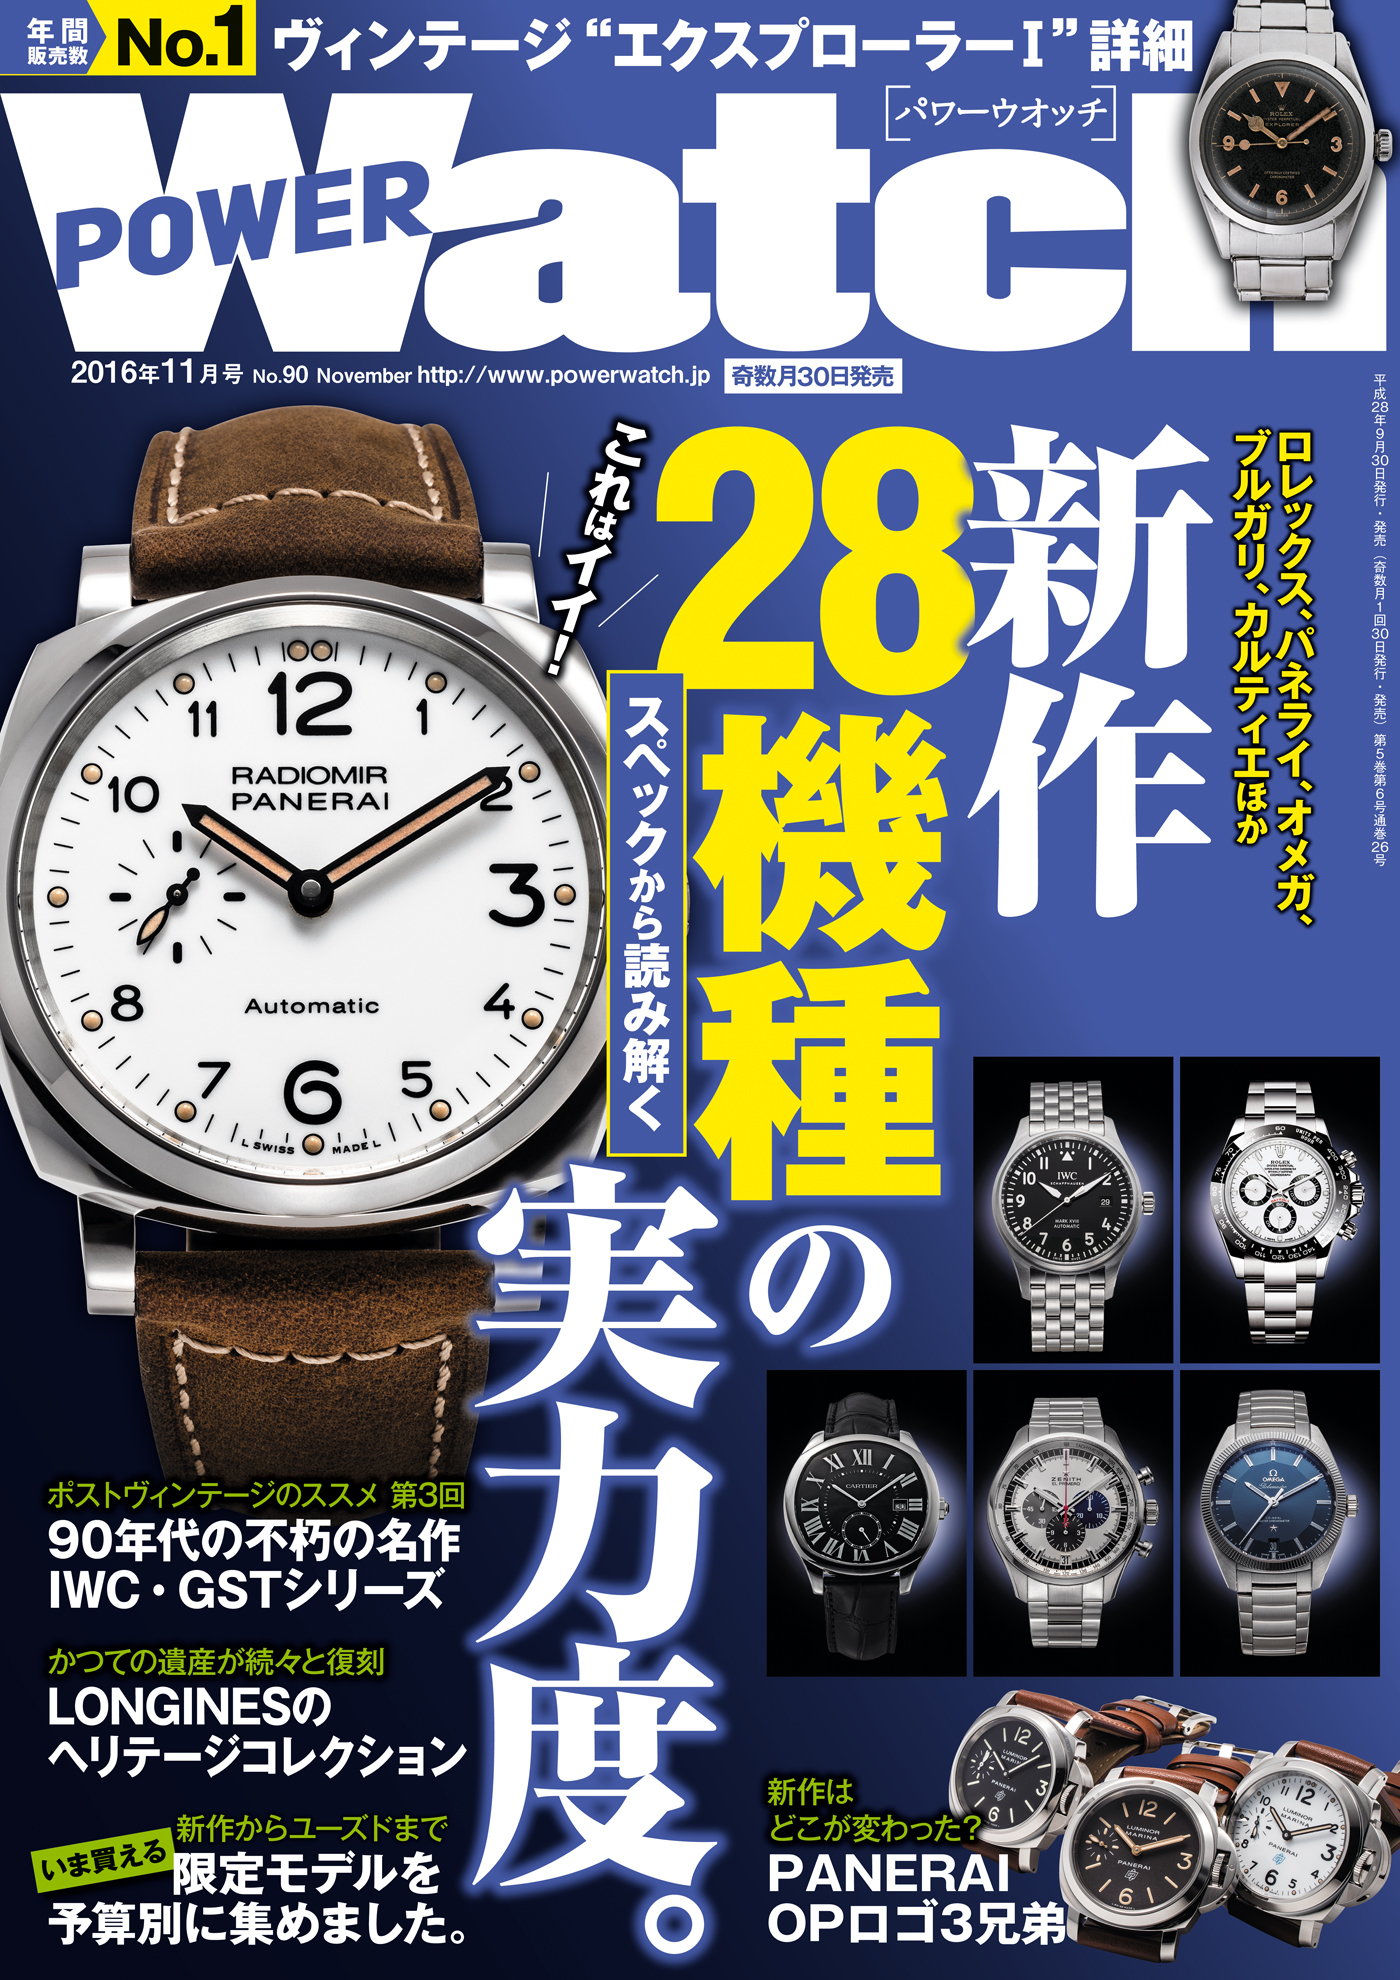 C's-Factory|電子書籍|POWER Watch No.90